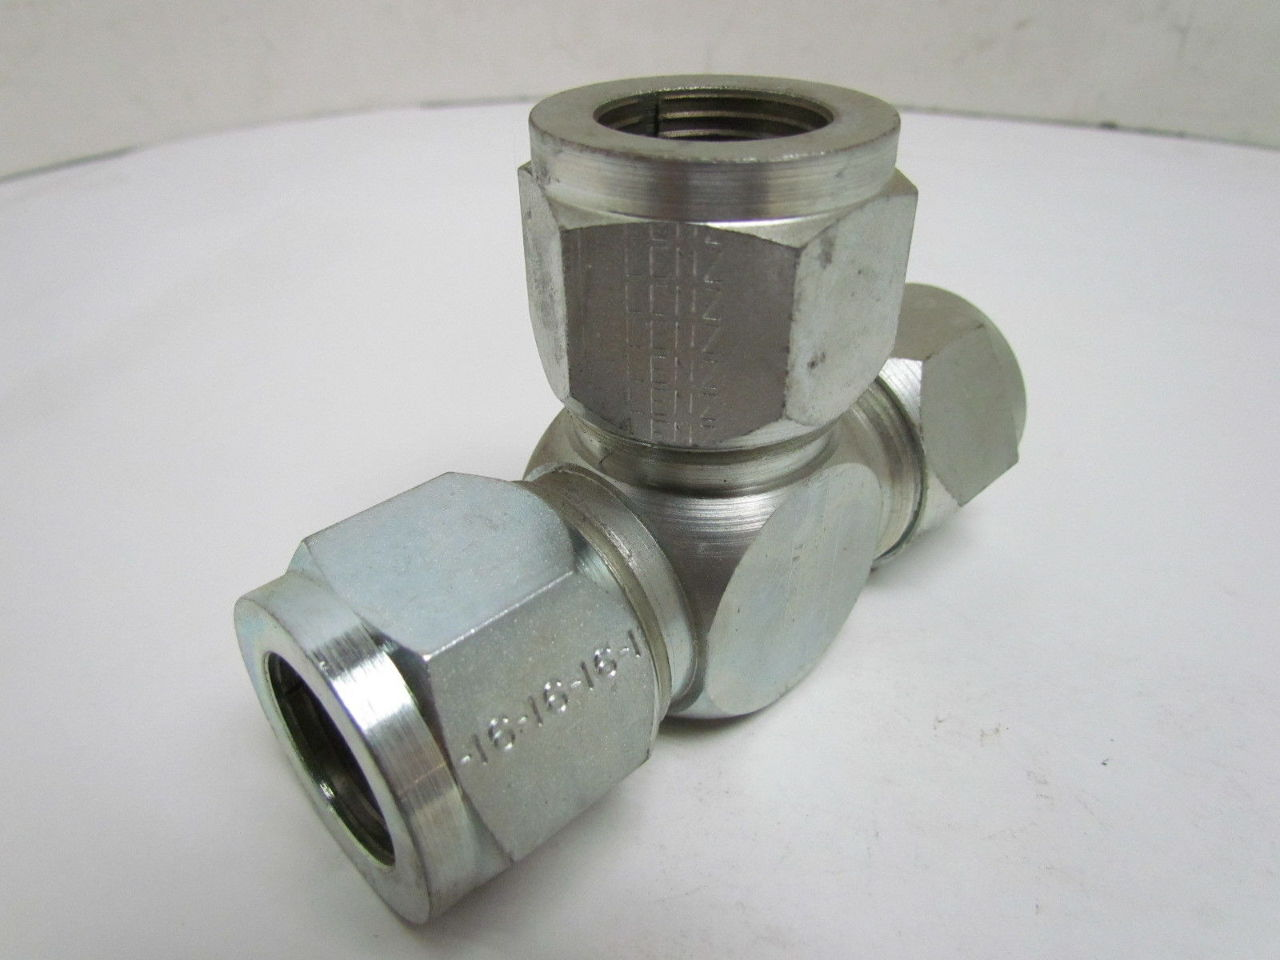 Lenz x quot tee union o ring seal tube end